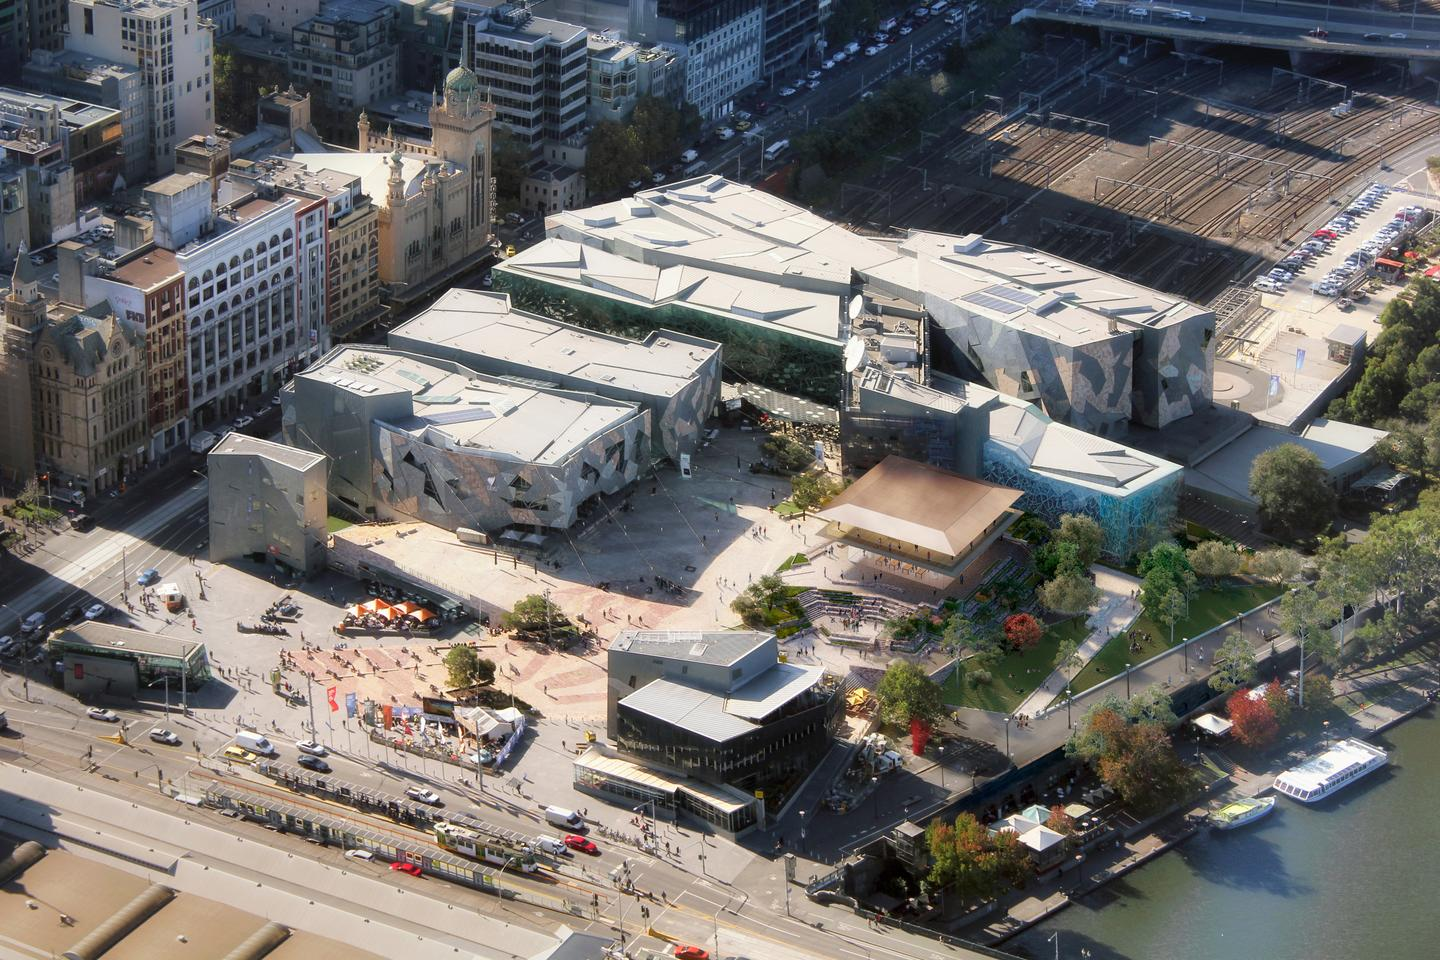 For what its worth, the Victorian government says the Apple FederationSquare storewill open up almost 500 sq m of public space along the riverside